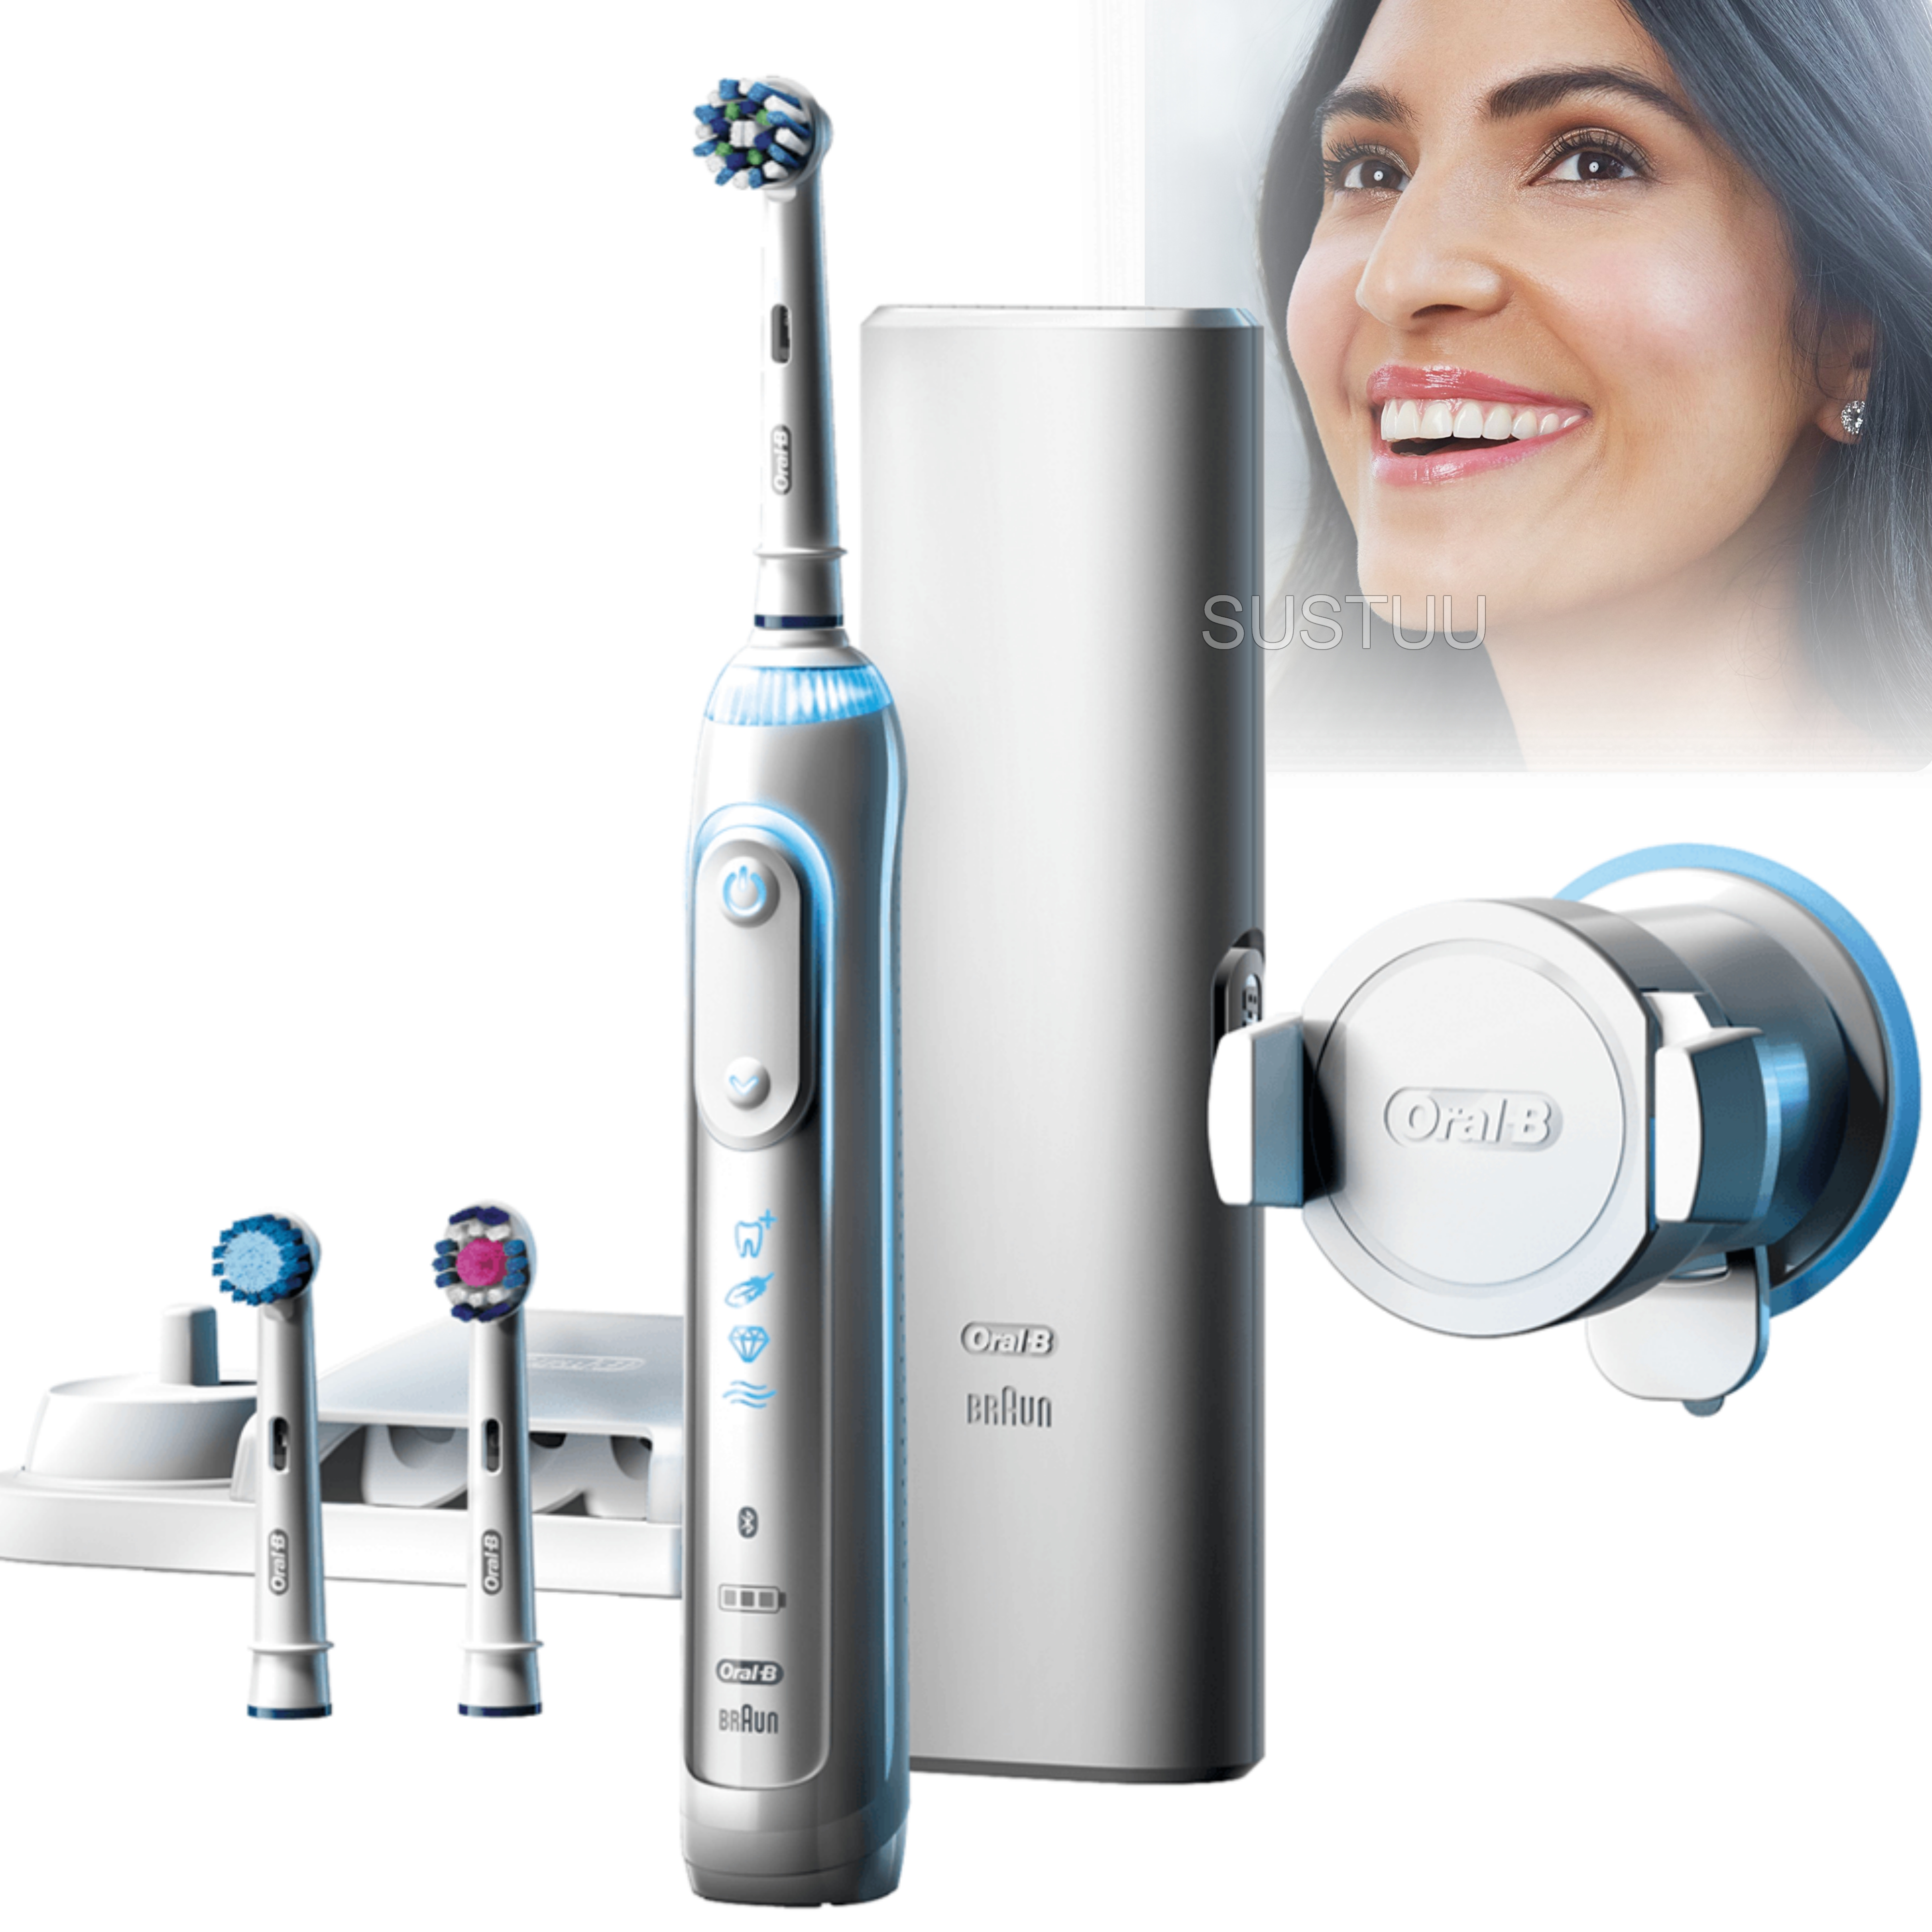 Oral-B Genius 8000 CrossAction Electric Rechargeable Toothbrush | Smart Bluetooth